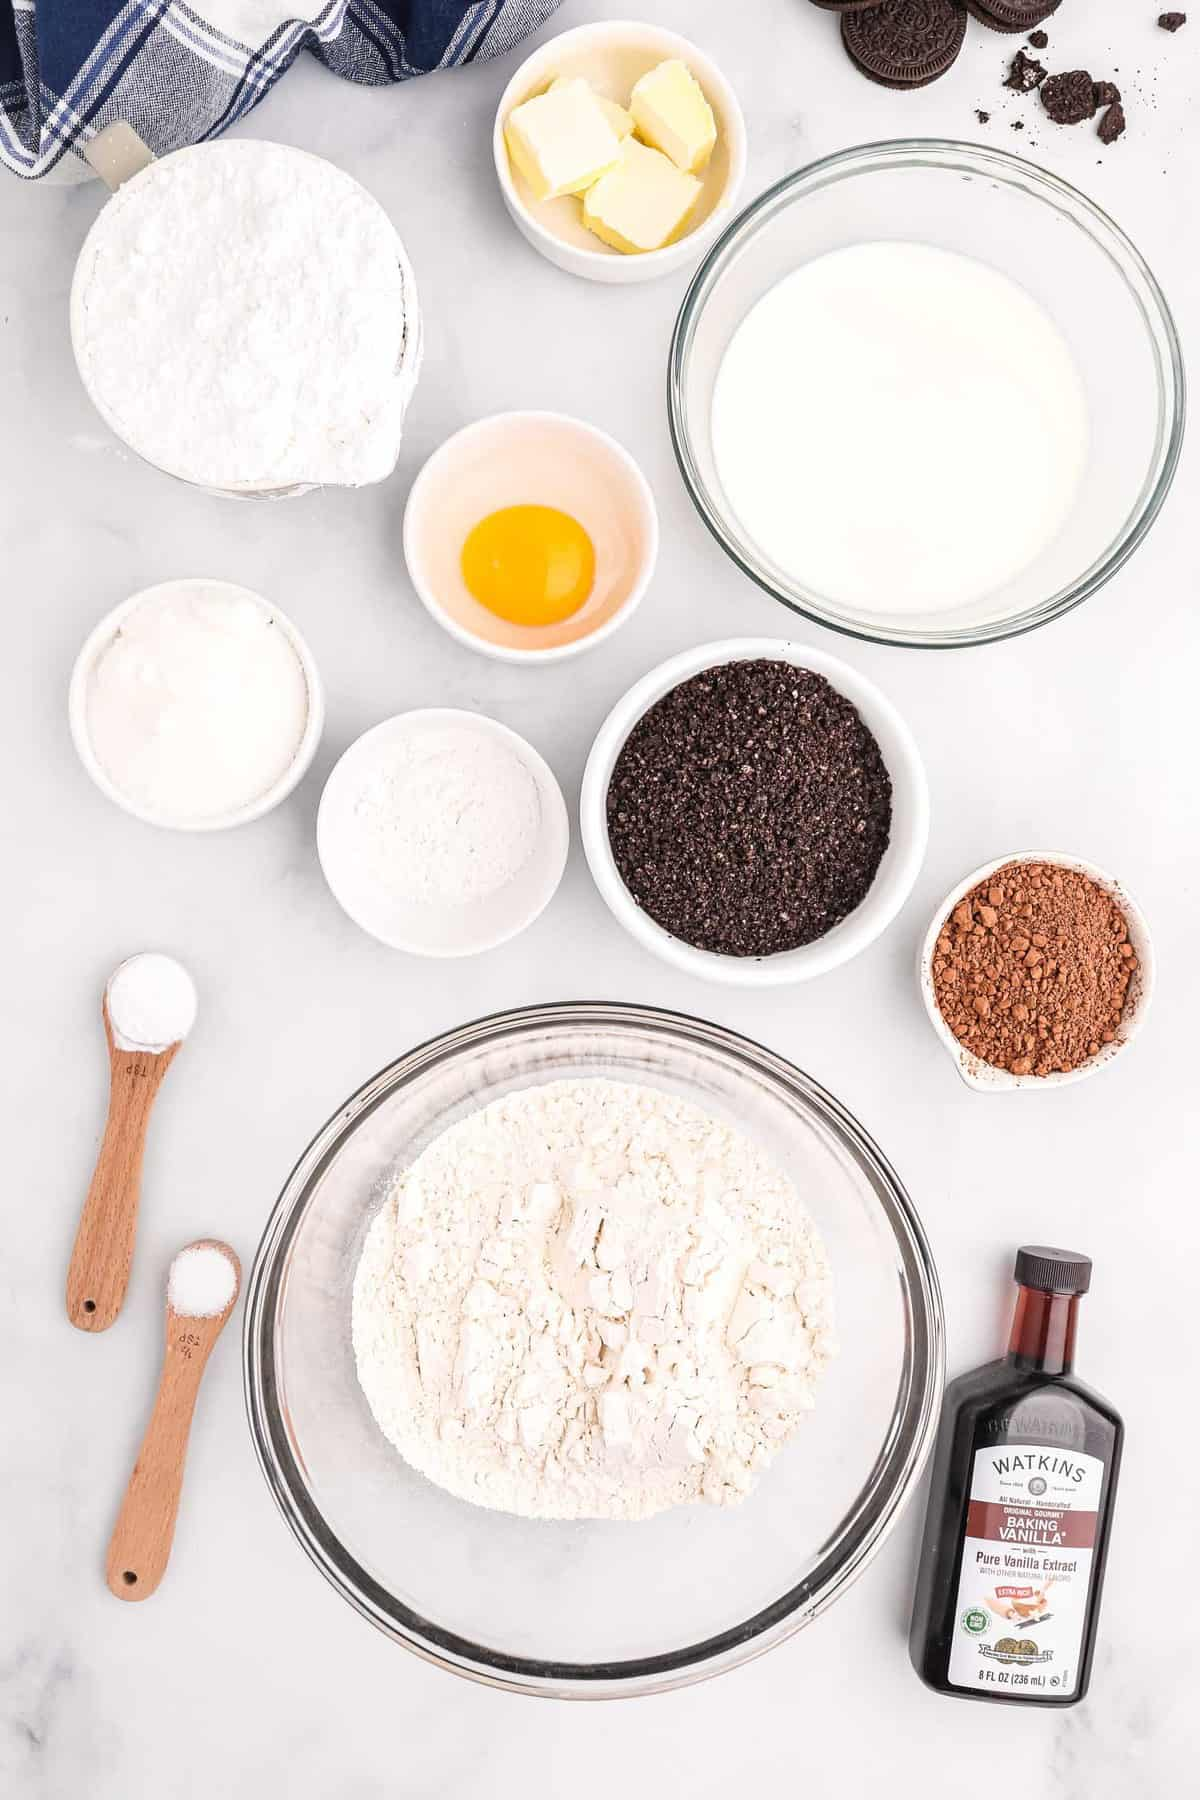 Overhead view of ingredients in bowls, including flour, cocoa powder, egg, butter, and more.